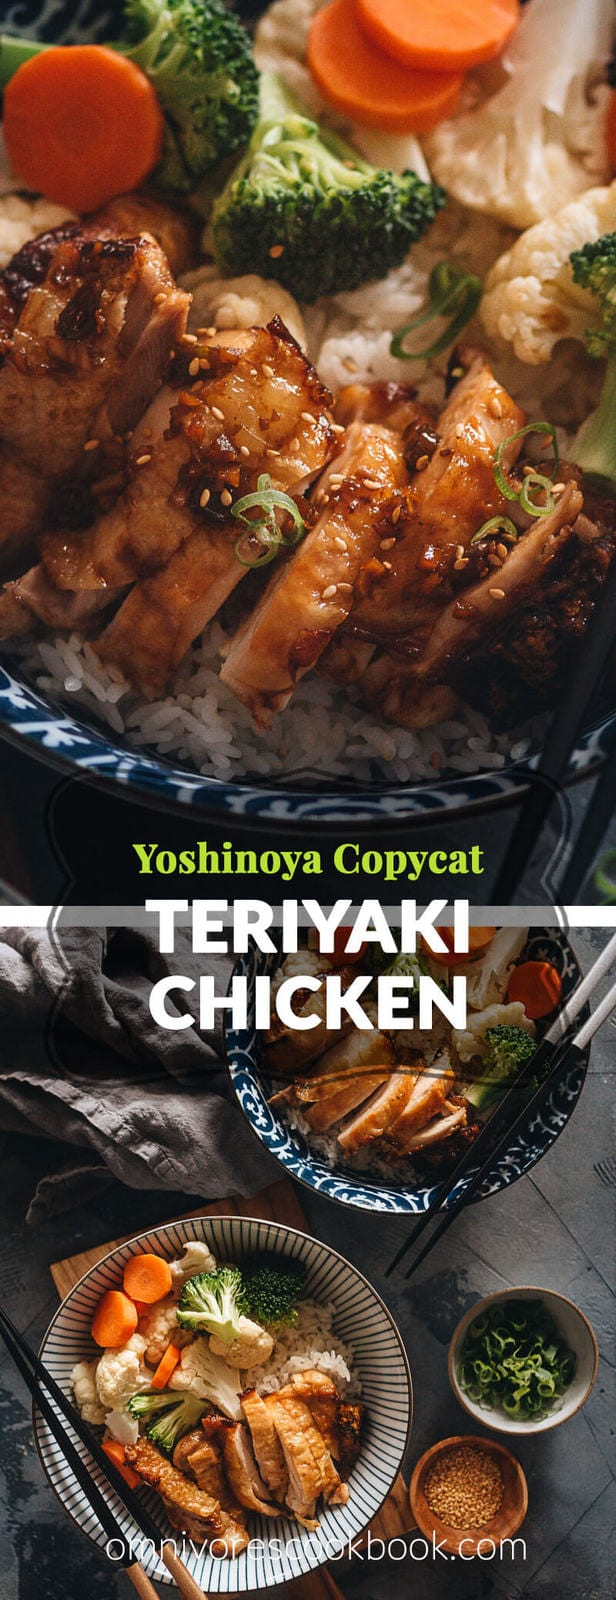 Teriyaki Chicken (Yoshinoya Copycat) - Juicy tender chicken thighs with crispy skin, served with an aromatic and rich teriyaki sauce that is not too sweet. This recipe mimics the Teriyaki chicken bowl served in Yoshinoya's overseas restaurants with a Chinese twist. {Gluten-free adaptable}